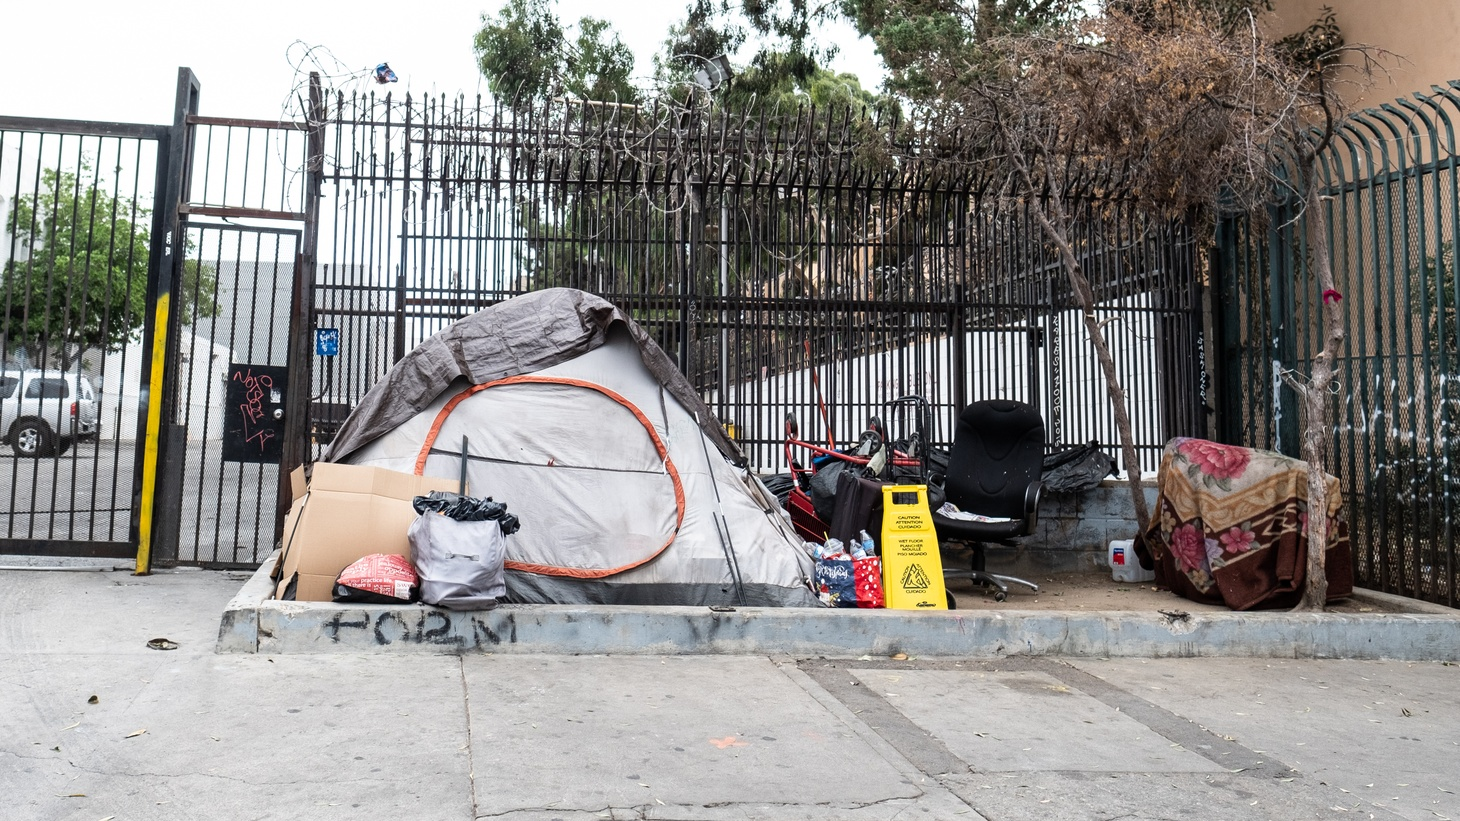 A homeless encampment sits along Los Angeles' Skid Row. Judge David Carter has ordered LA to offer shelters to people living on Skid Row by October 18, 2021.